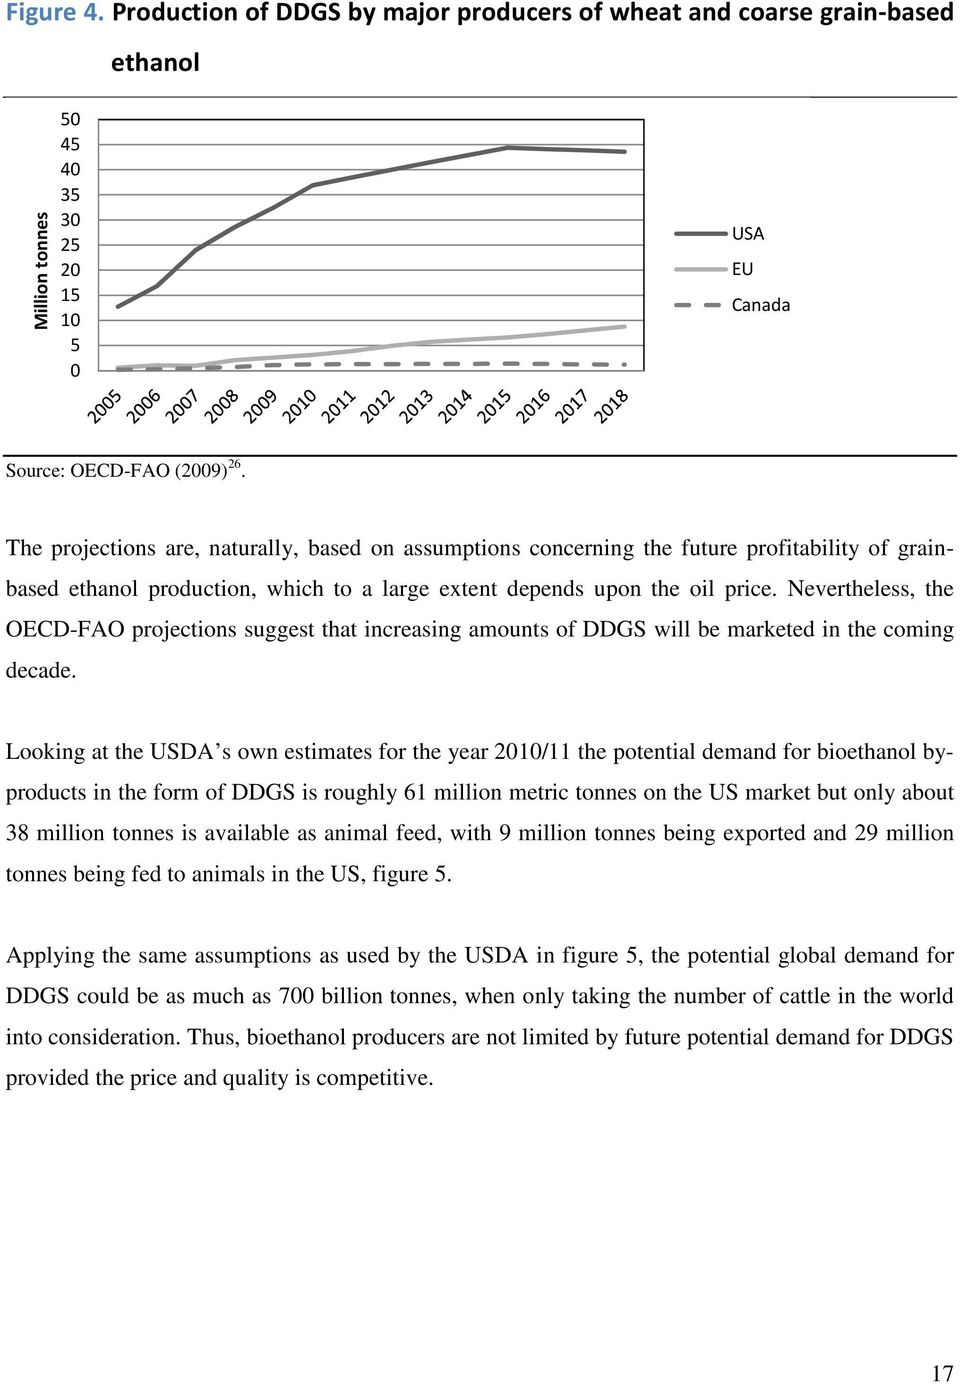 Nevertheless, the OECD-FAO projections suggest that increasing amounts of DDGS will be marketed in the coming decade.